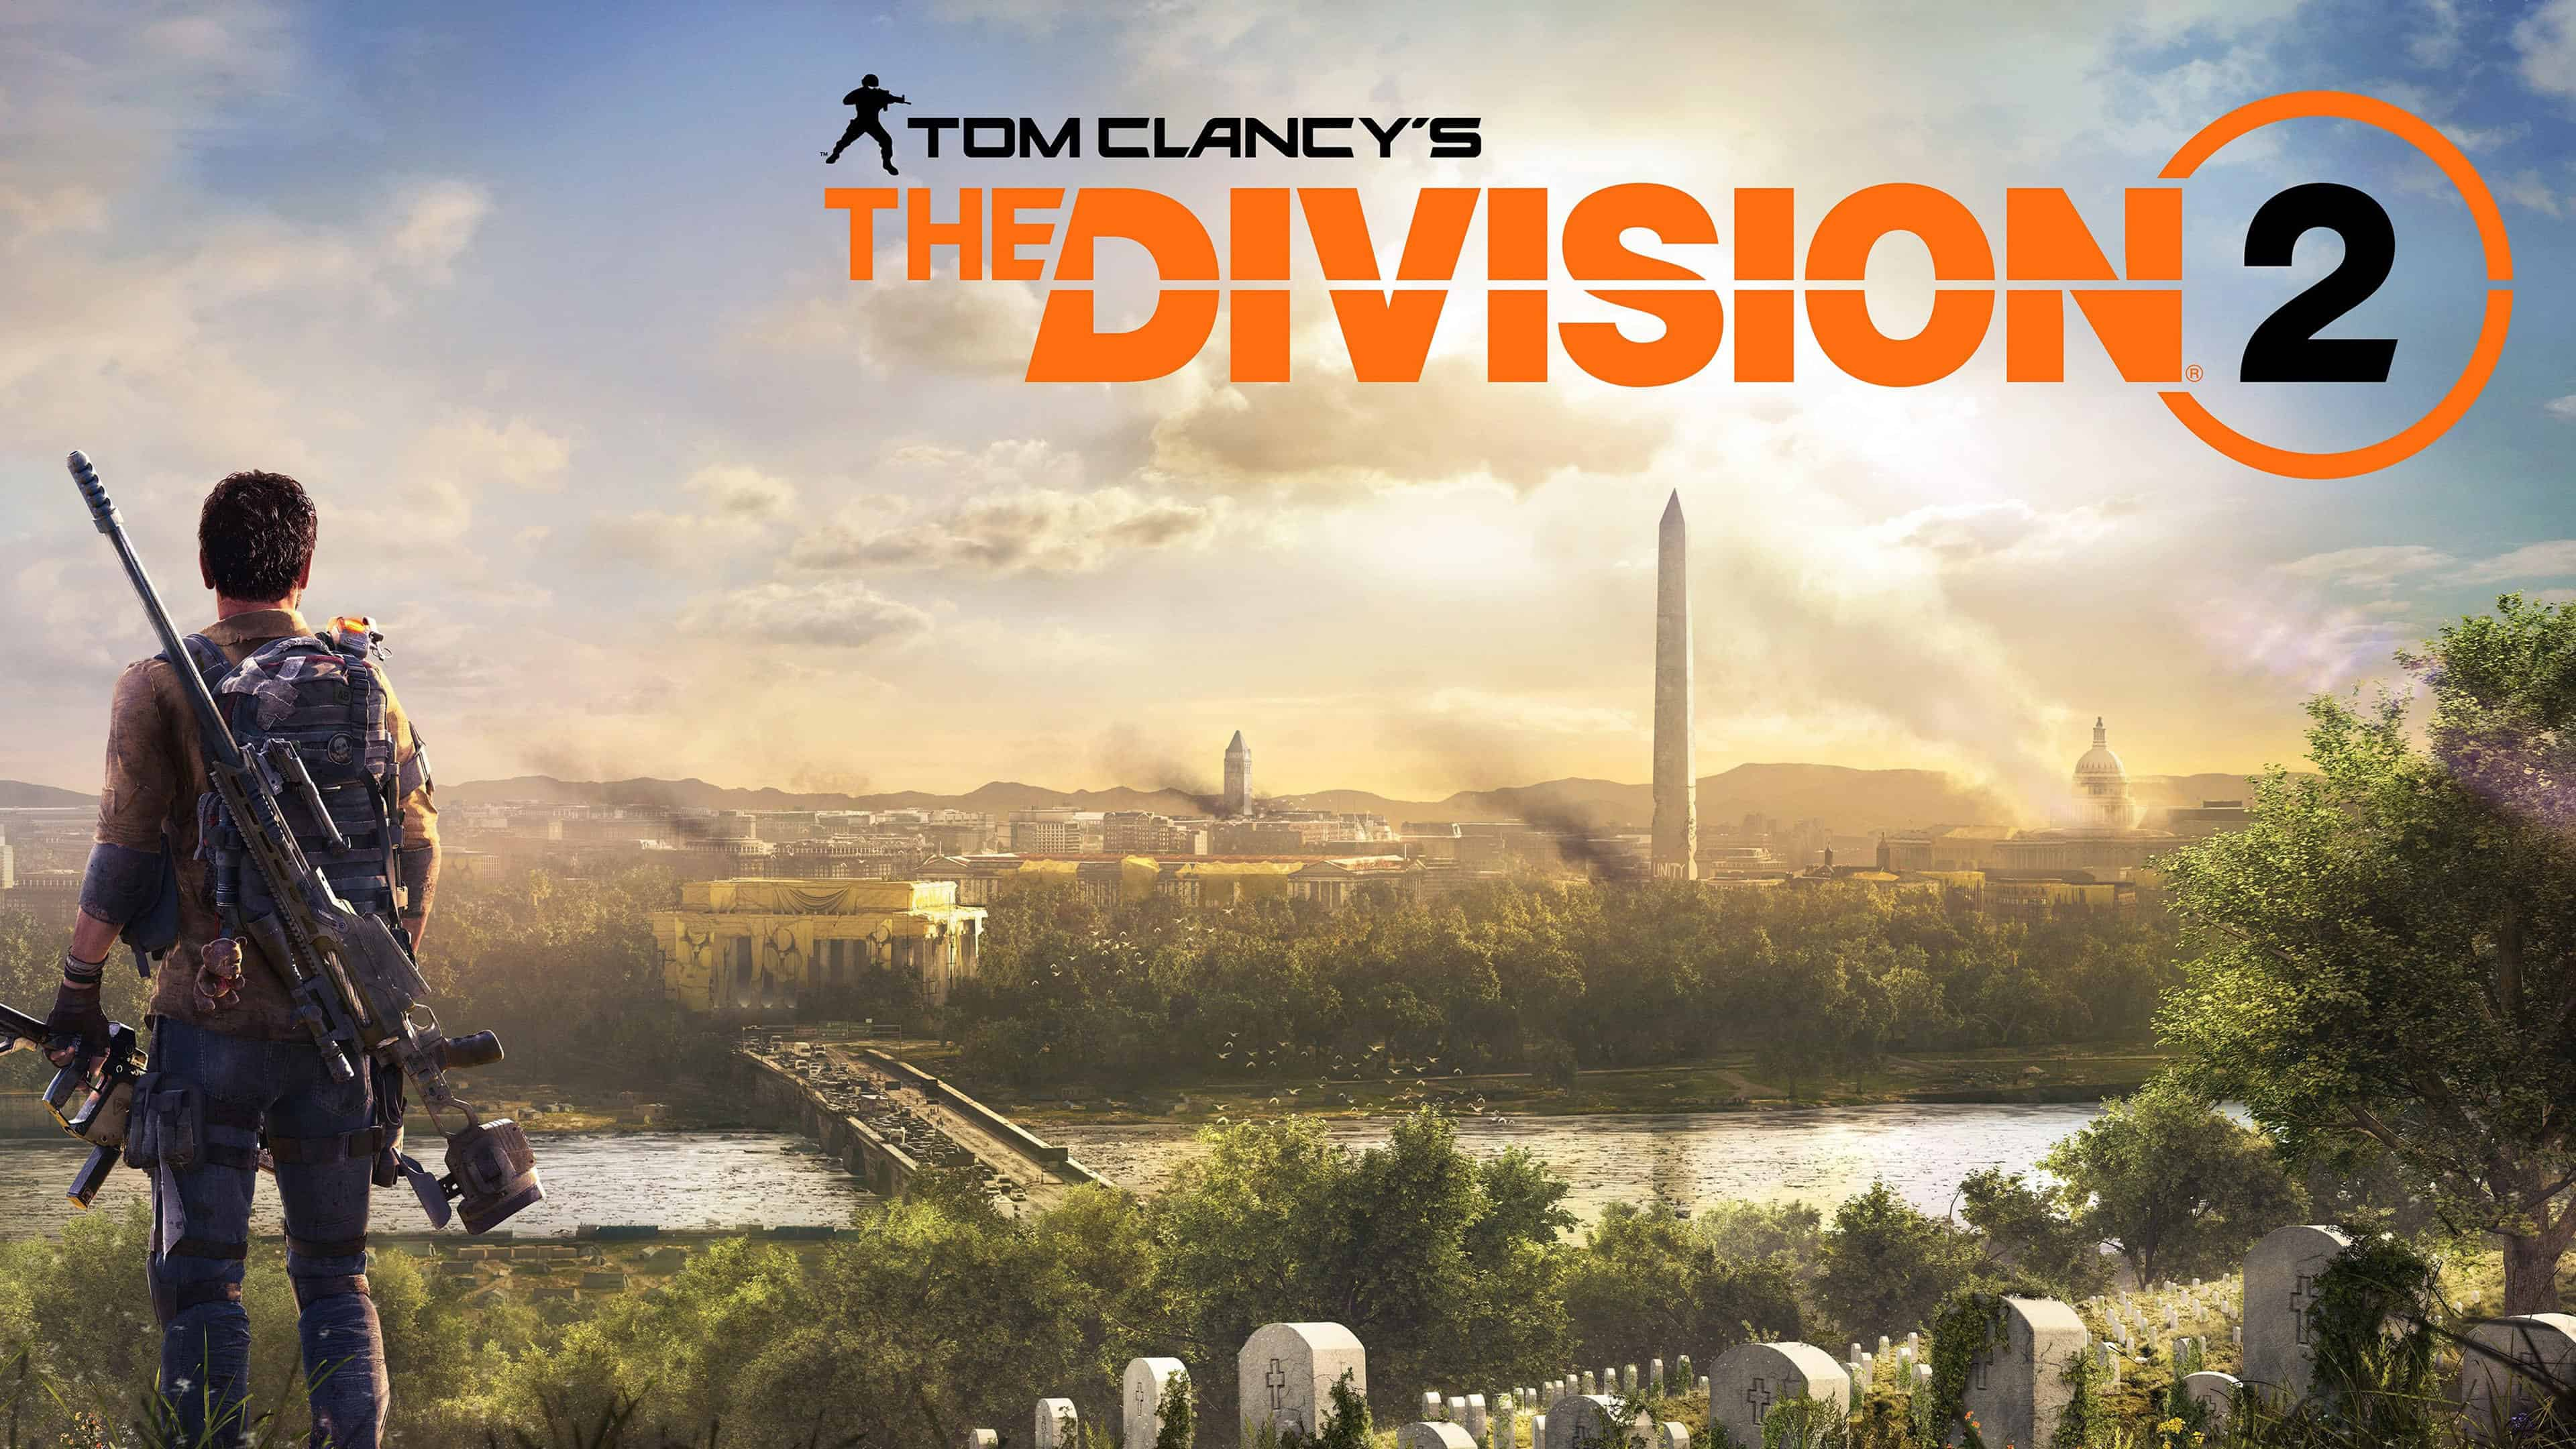 tom clancy the division 2 poster uhd 4k wallpaper